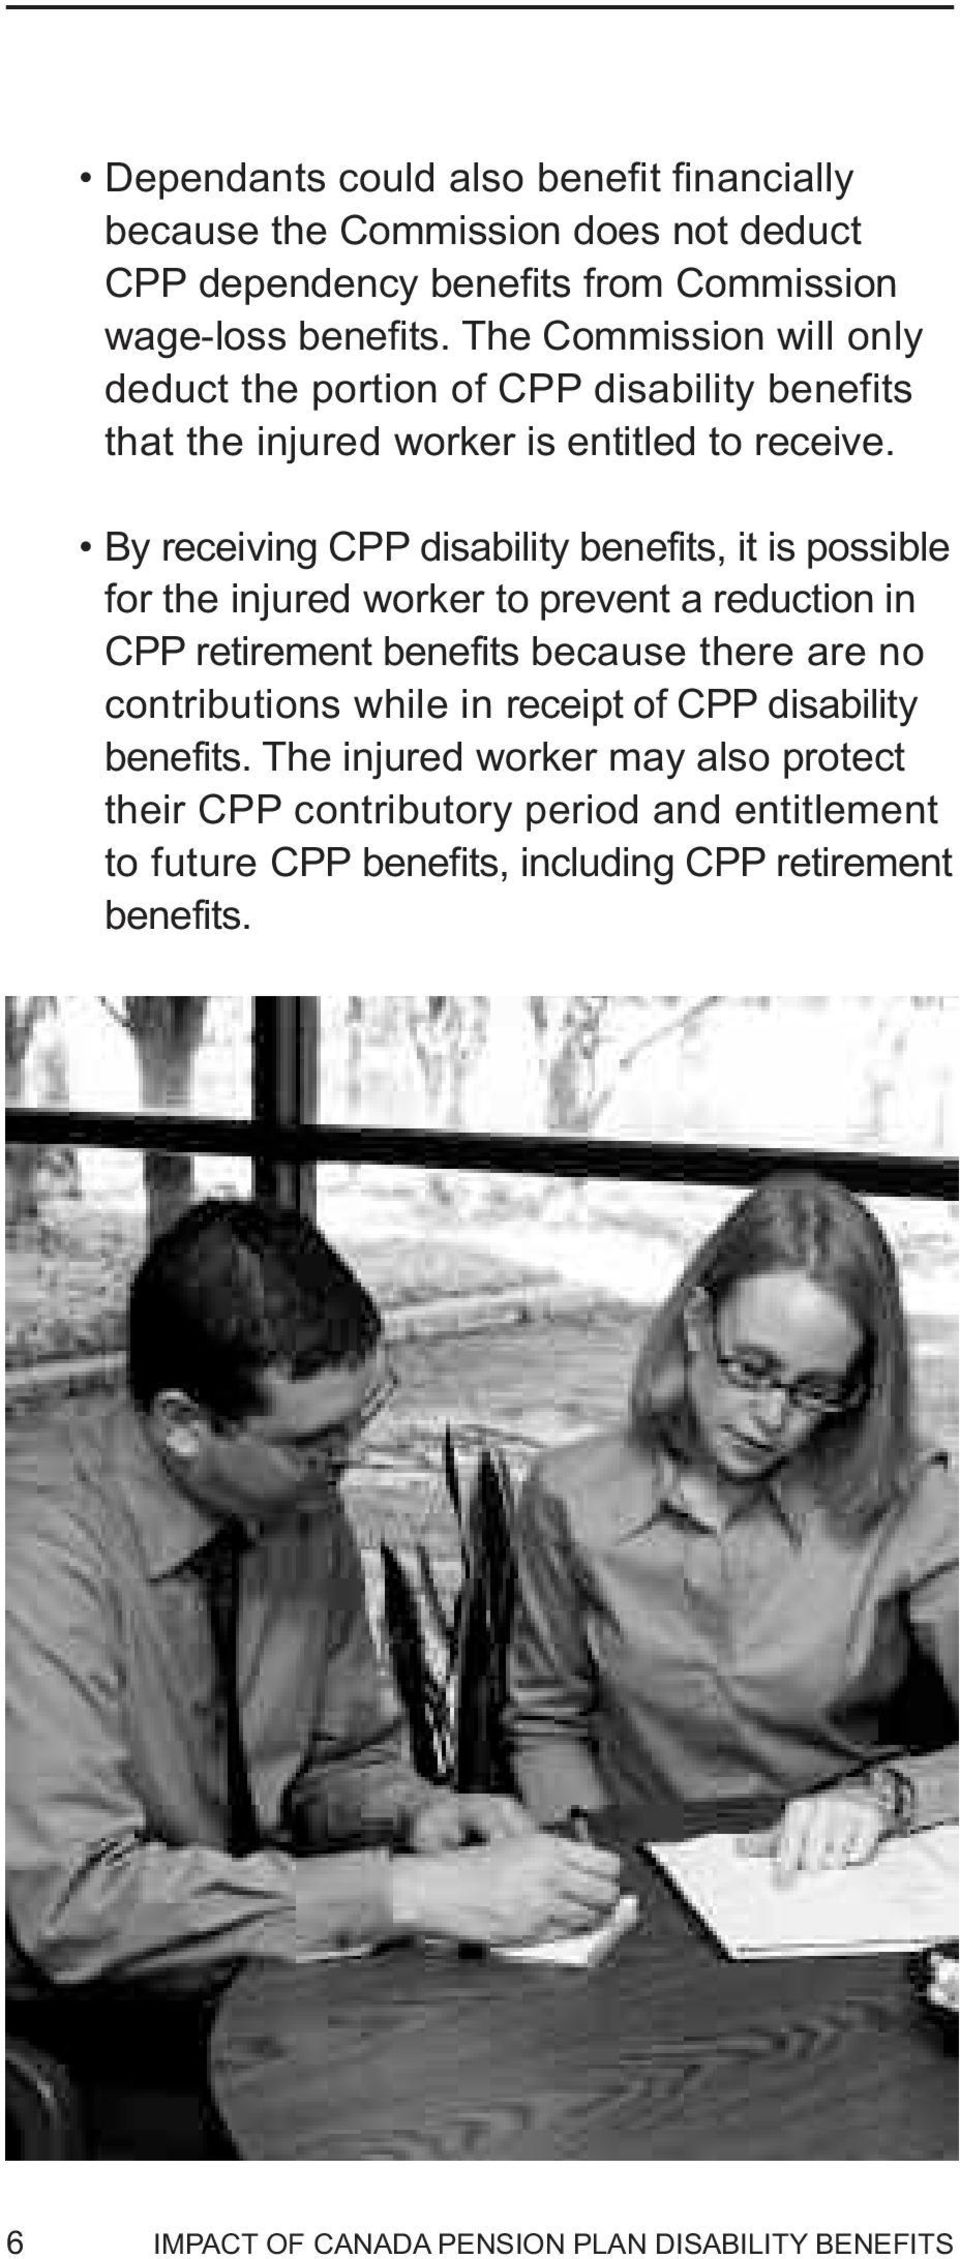 By receiving CPP disability benefits, it is possible for the injured worker to prevent a reduction in CPP retirement benefits because there are no contributions